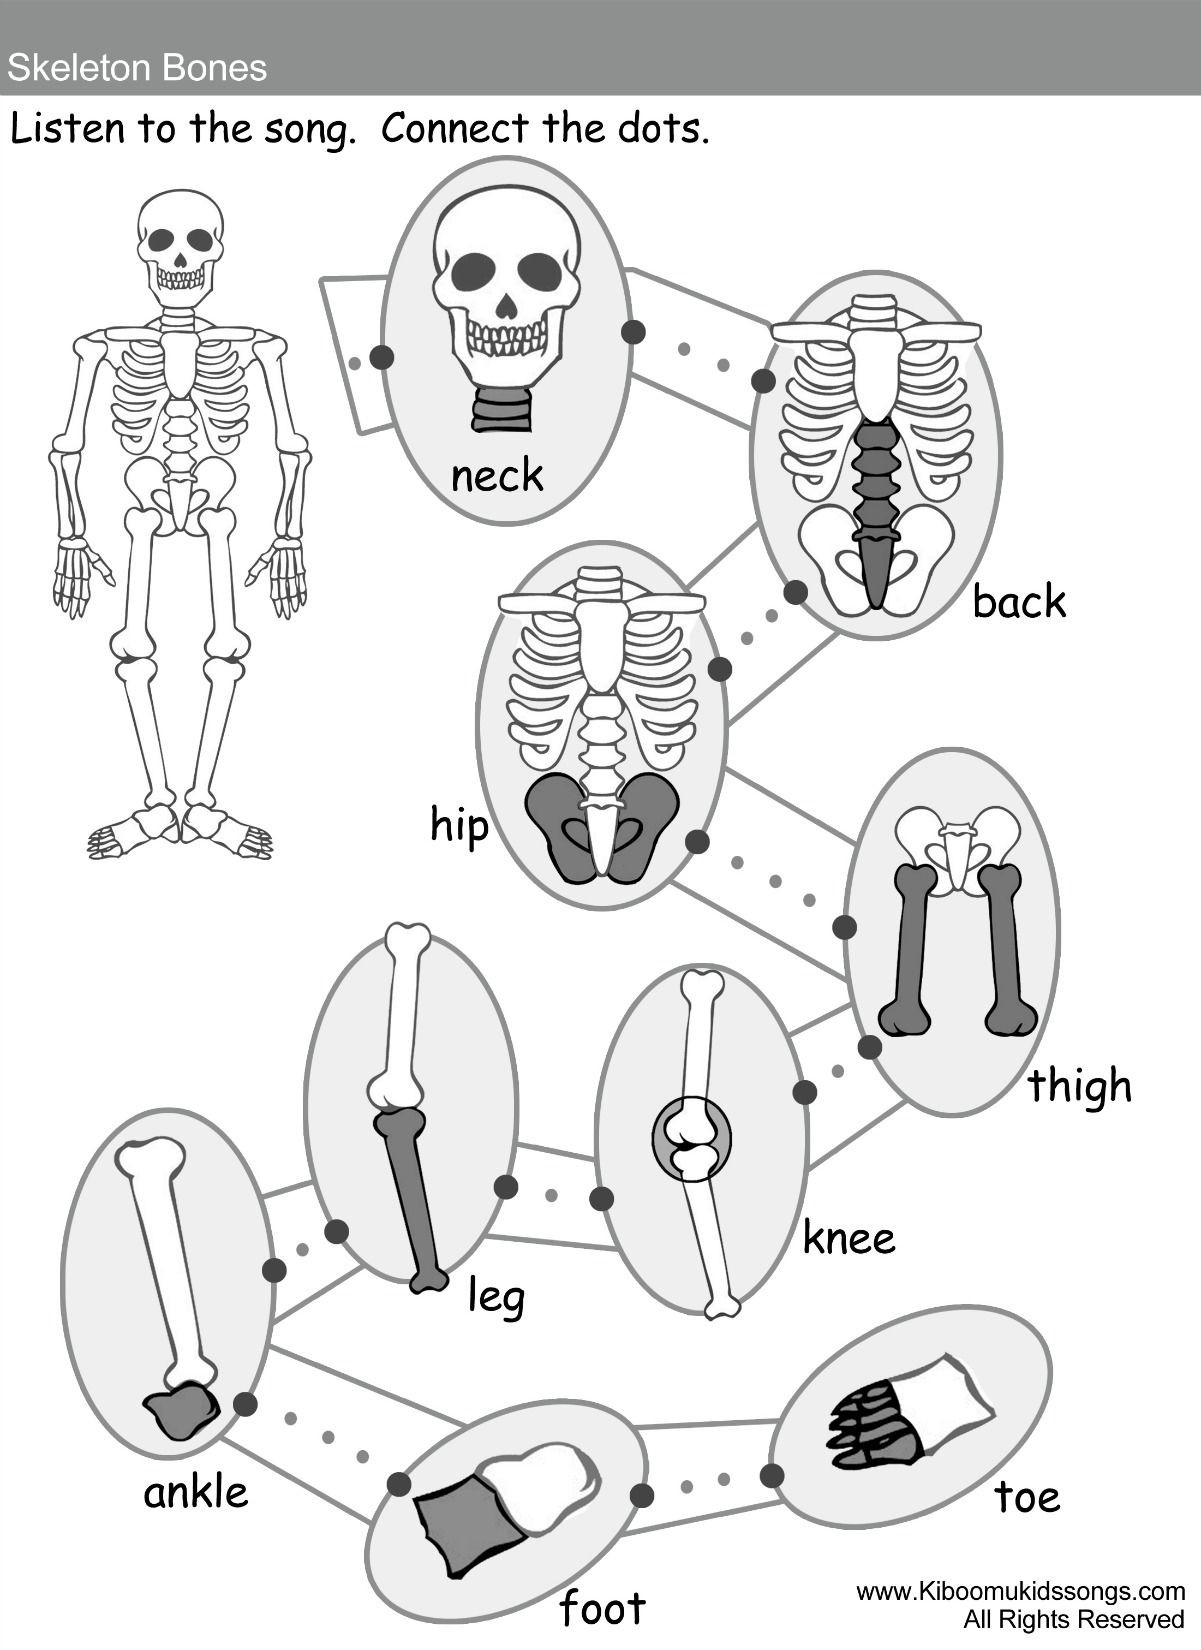 Free Printable Human Anatomy Worksheets Skeleton Bones song and Worksheets